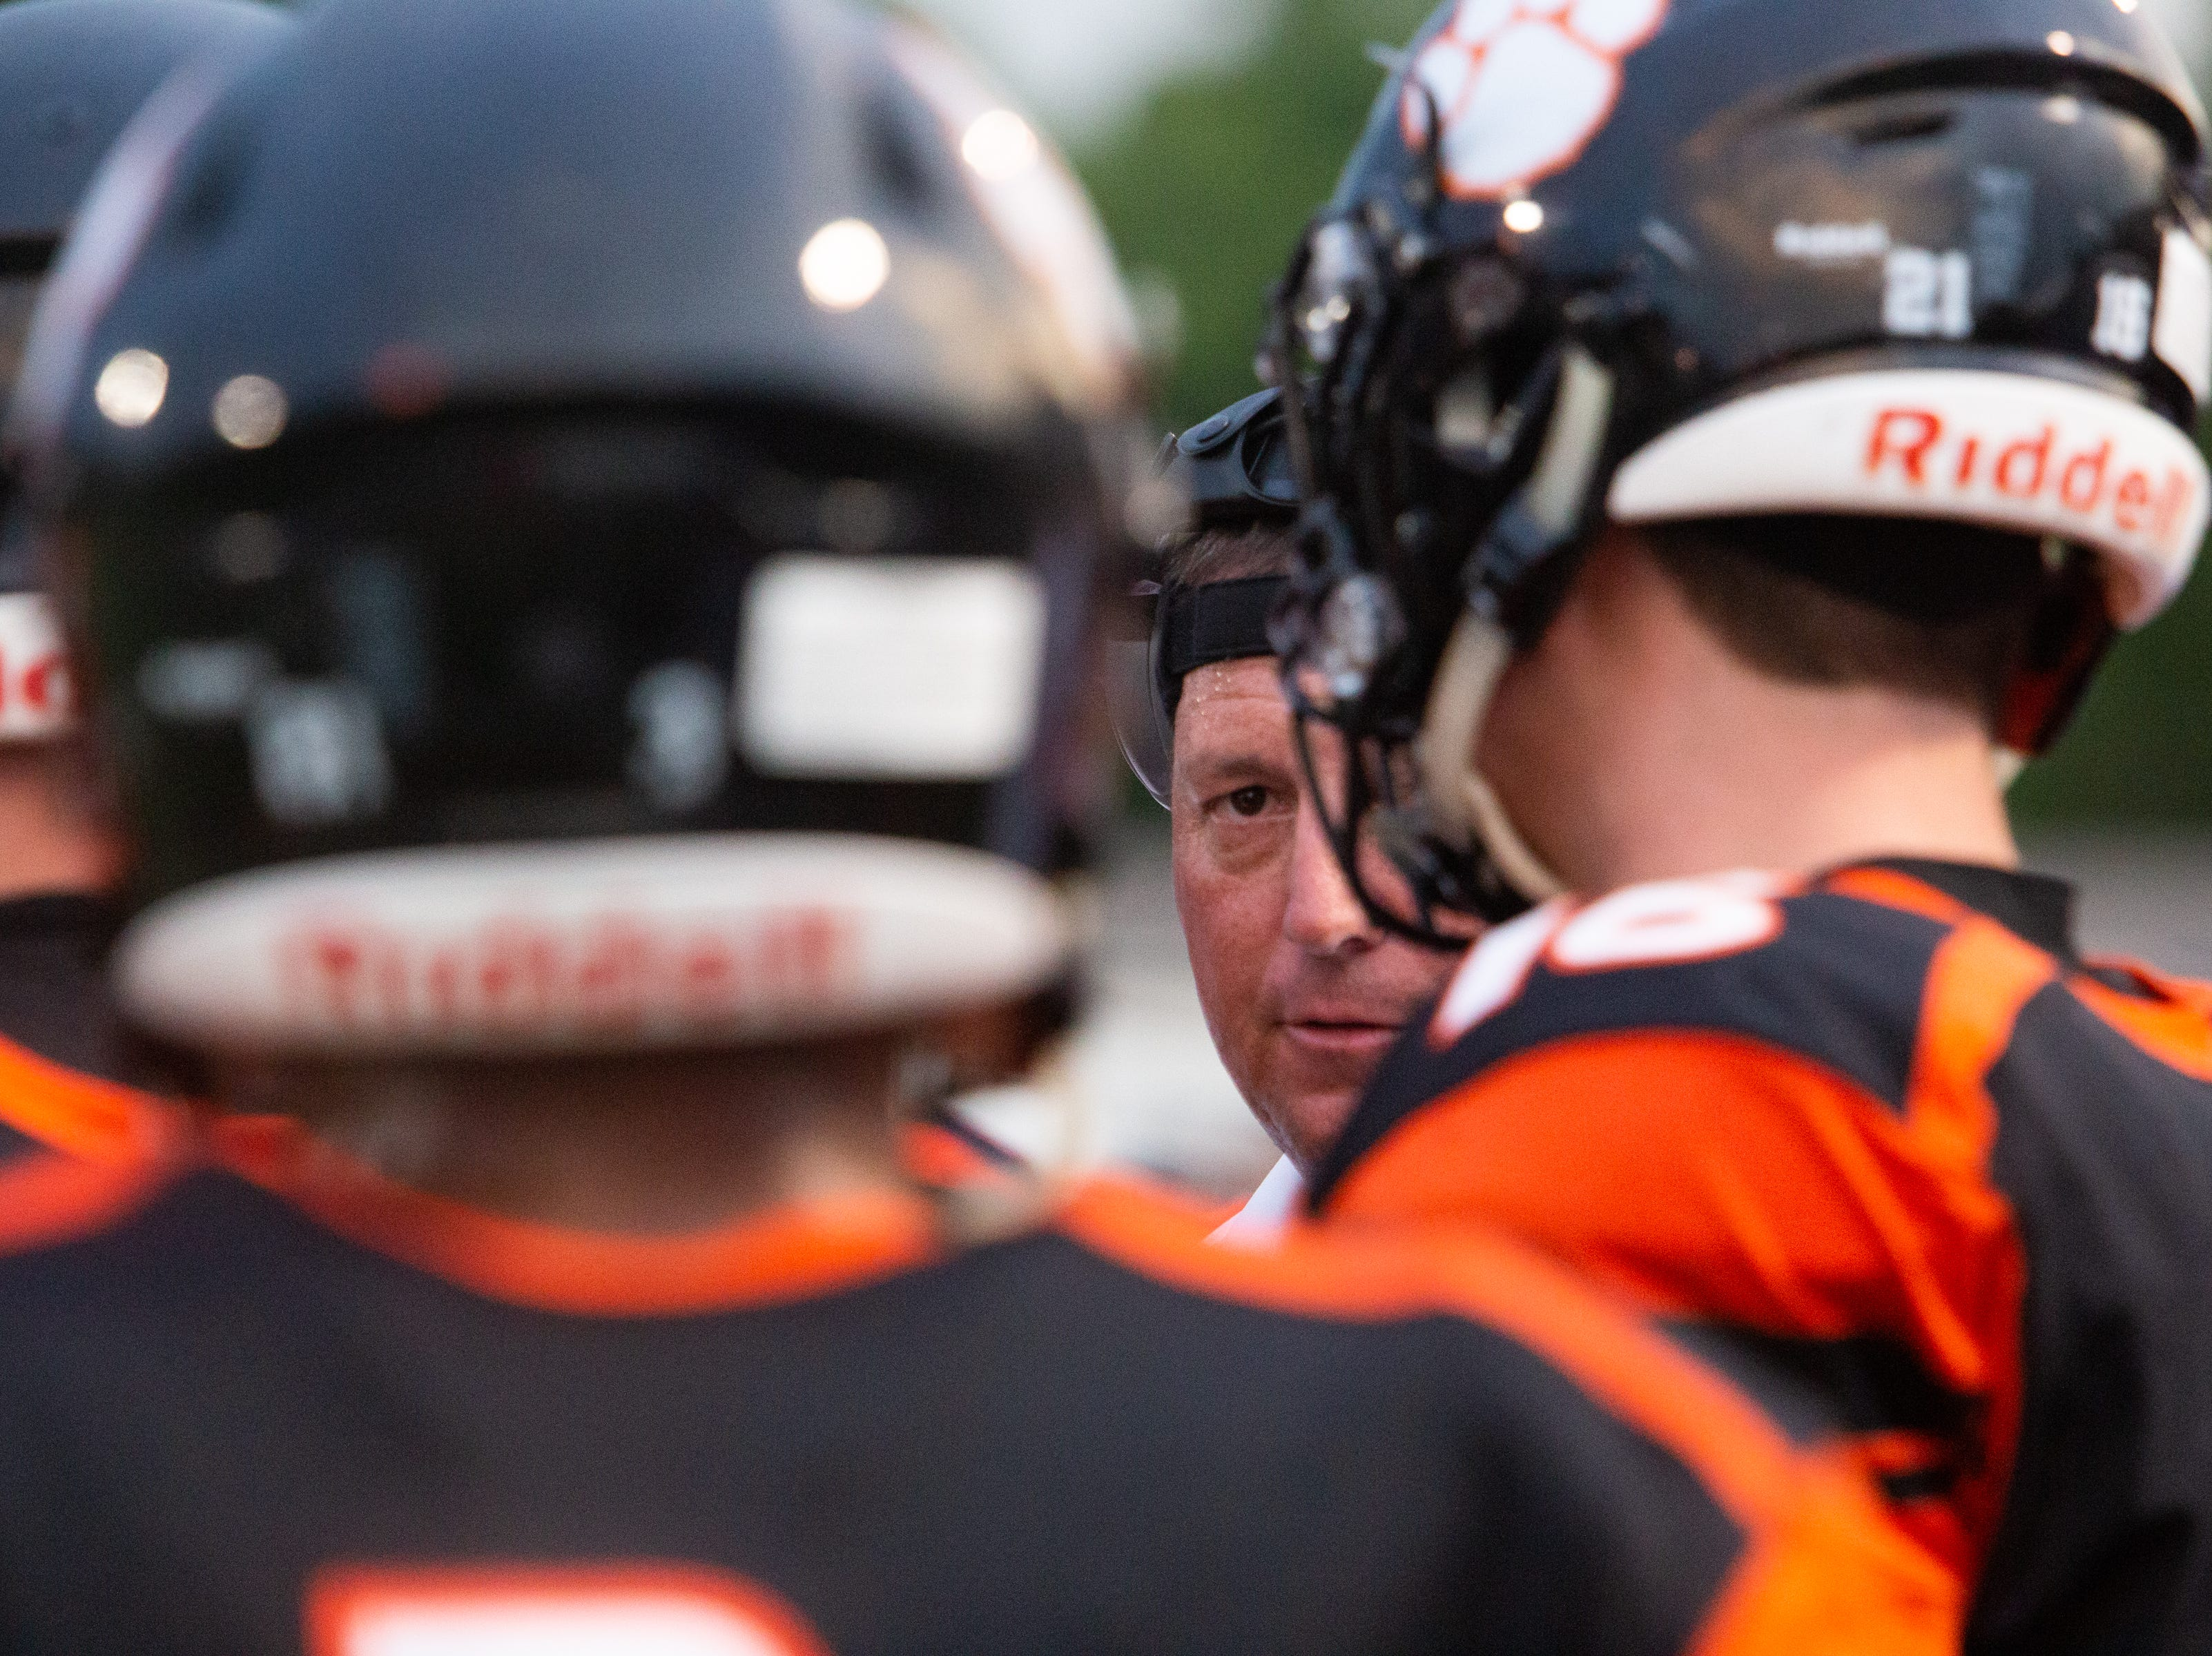 Powell head coach Matt Lowe talks with his players during the Powell versus Halls football game at Powell High School Friday, Aug. 17, 2018.